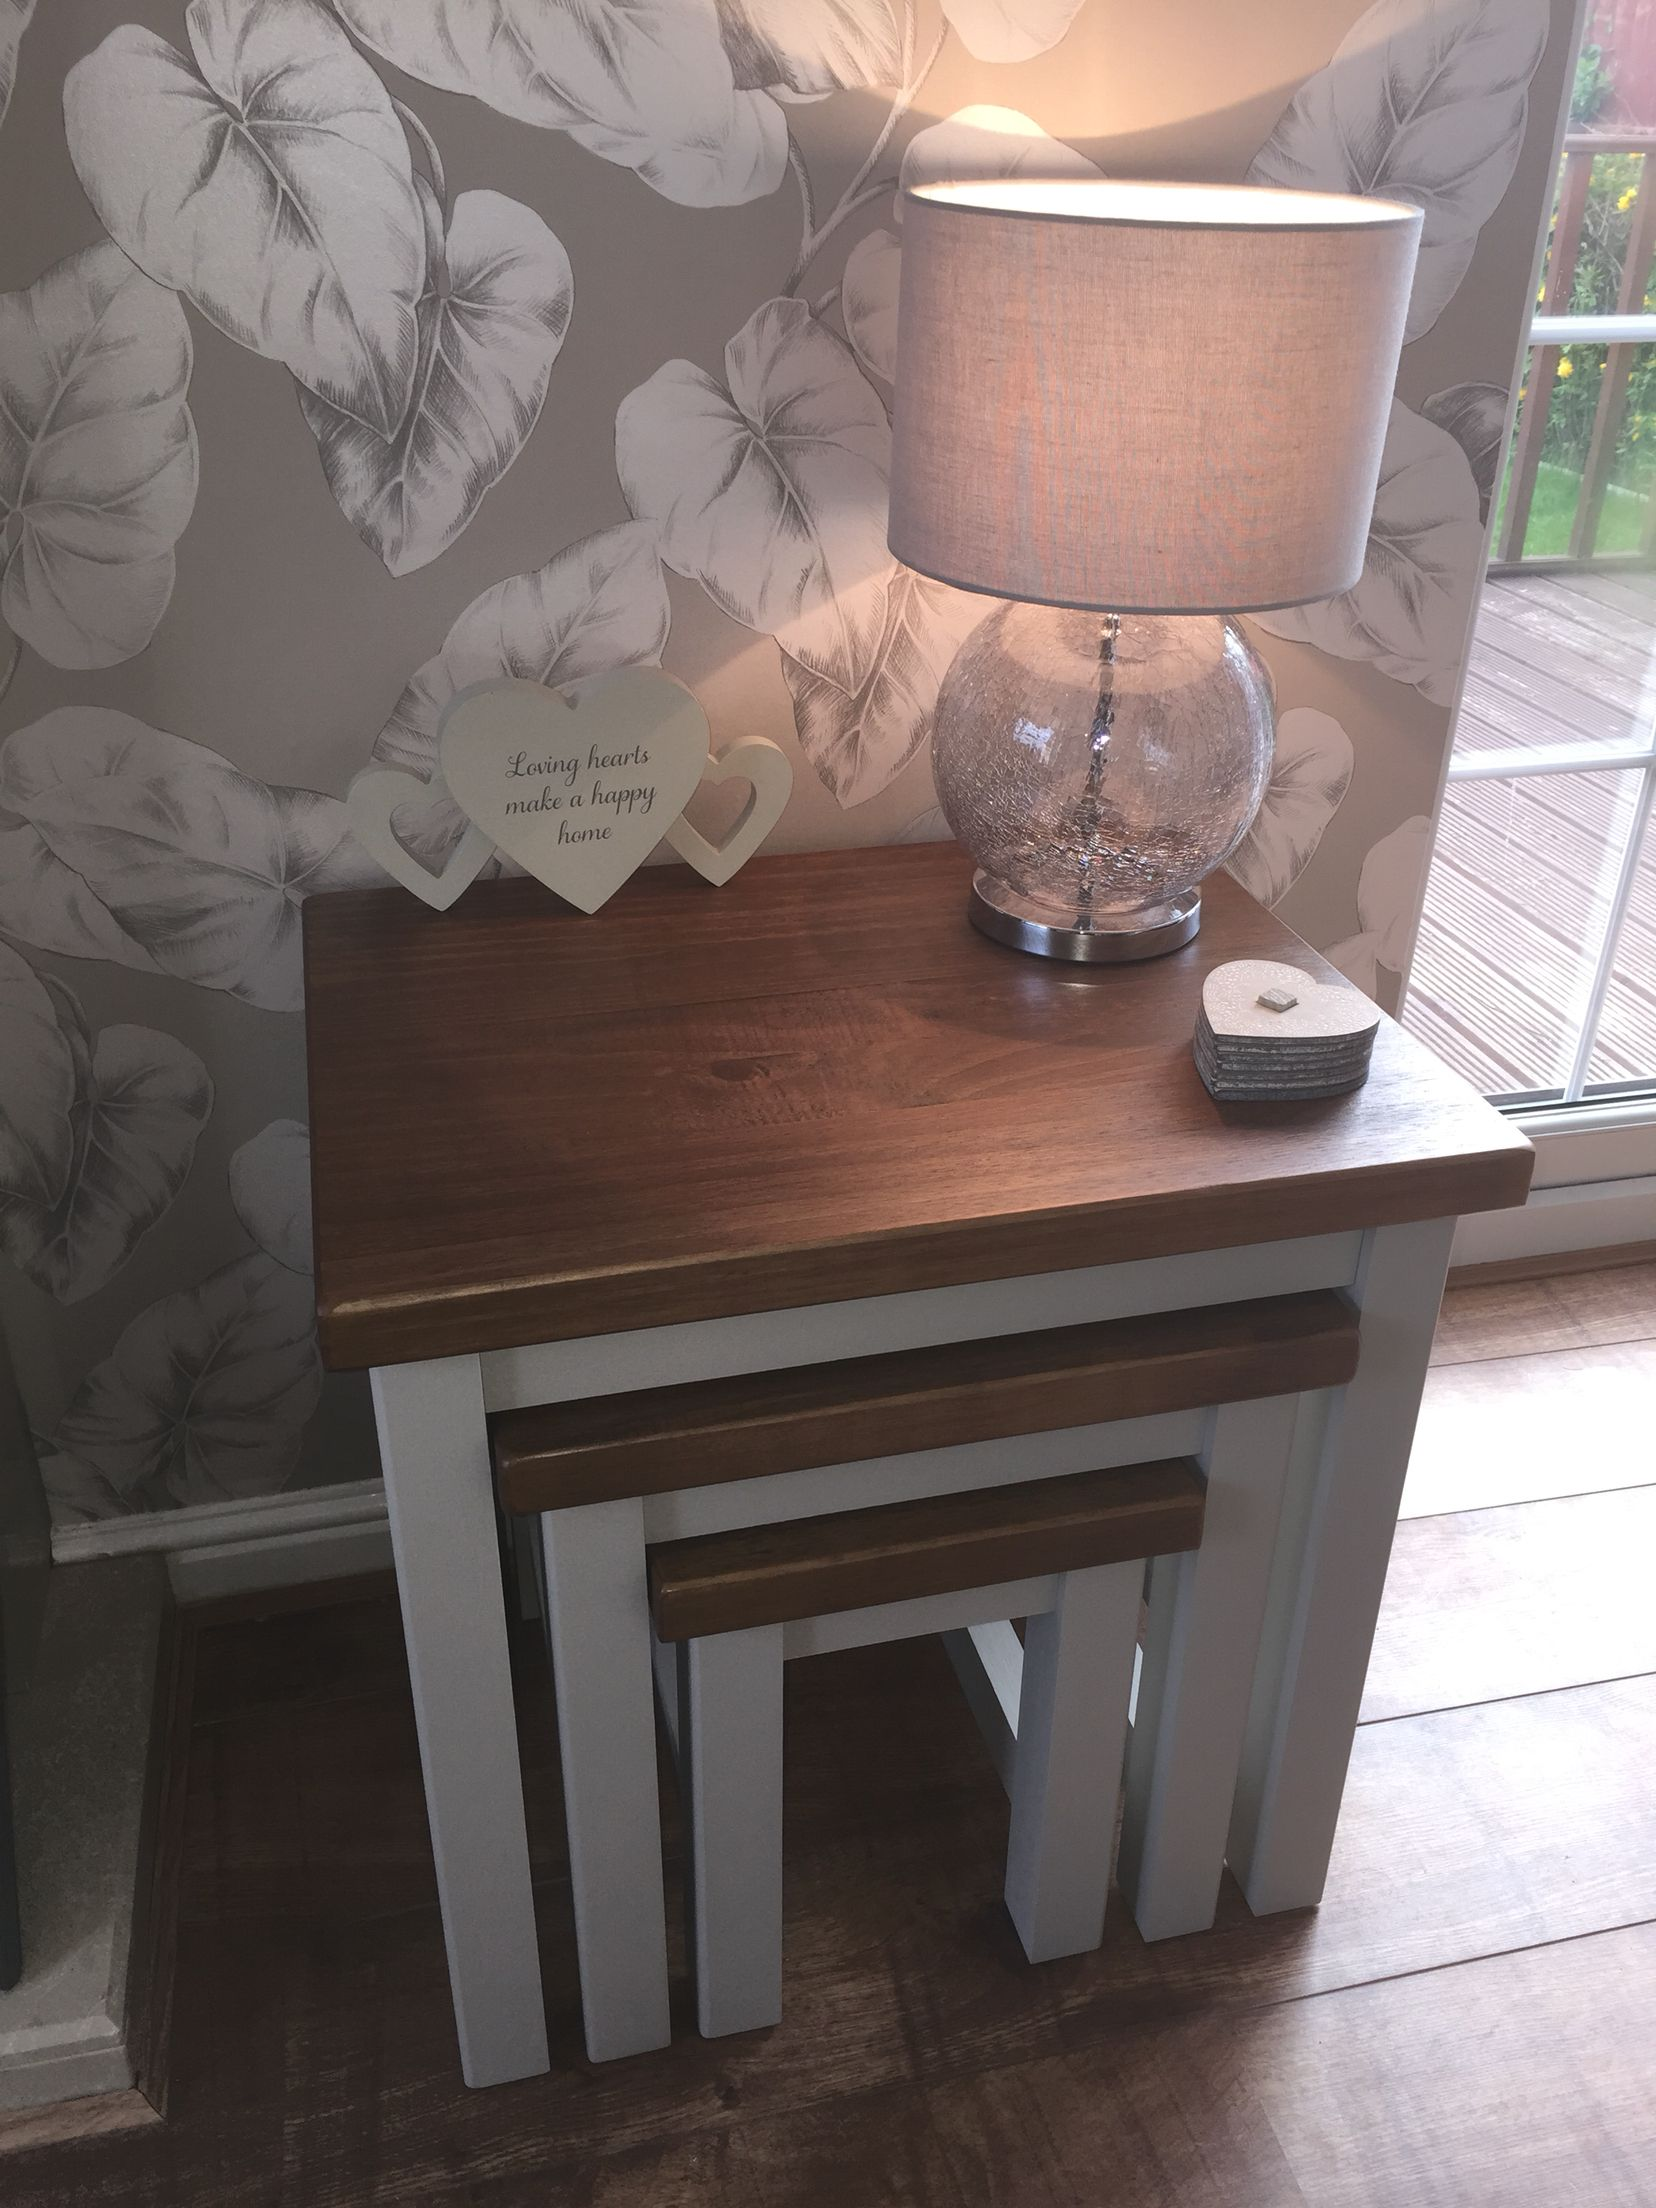 Loving my new painted Hartford tables from Next